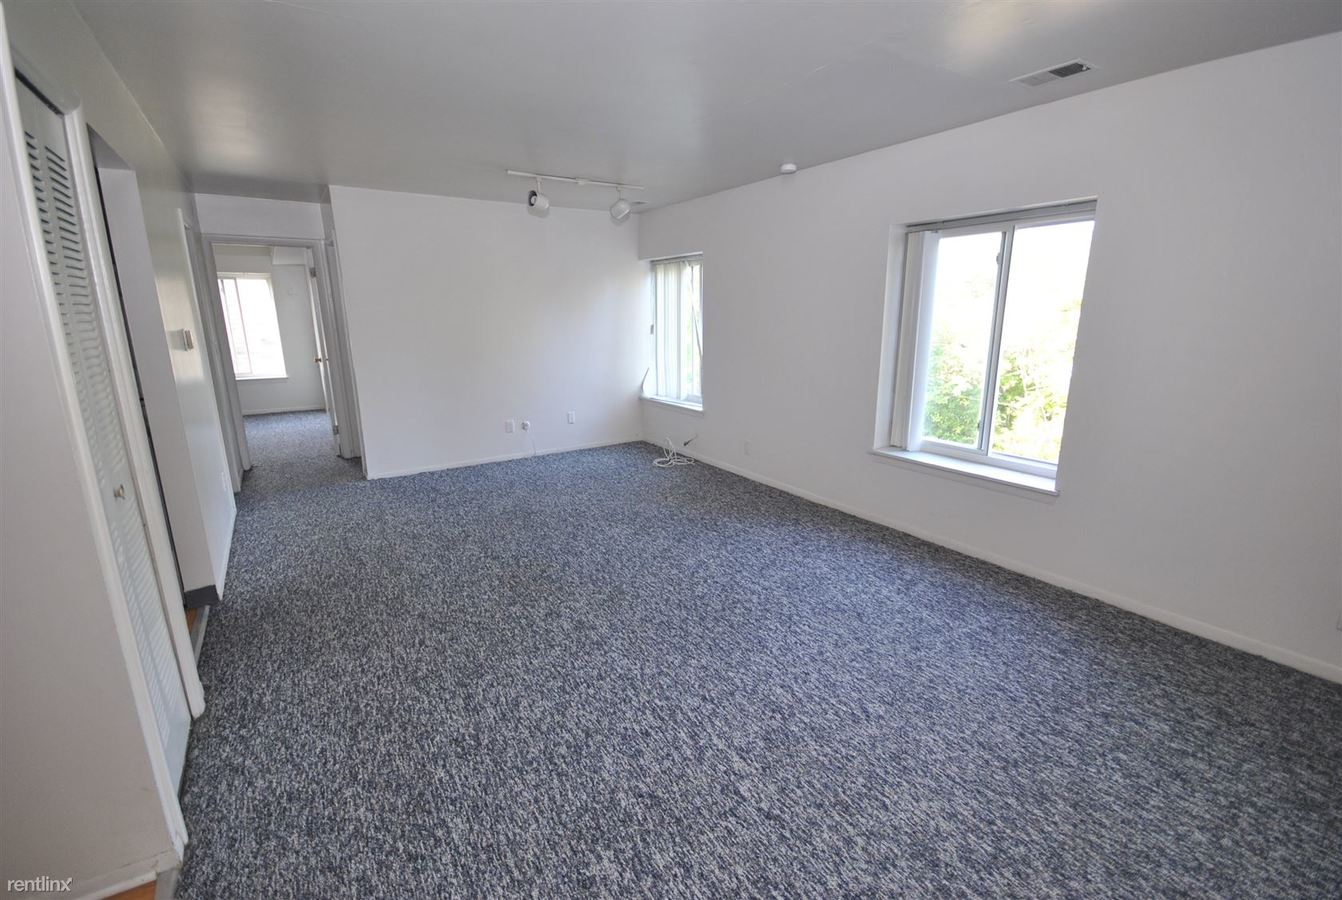 2 Bedrooms 1 Bathroom Apartment for rent at 908 Sybil St in Ann Arbor, MI